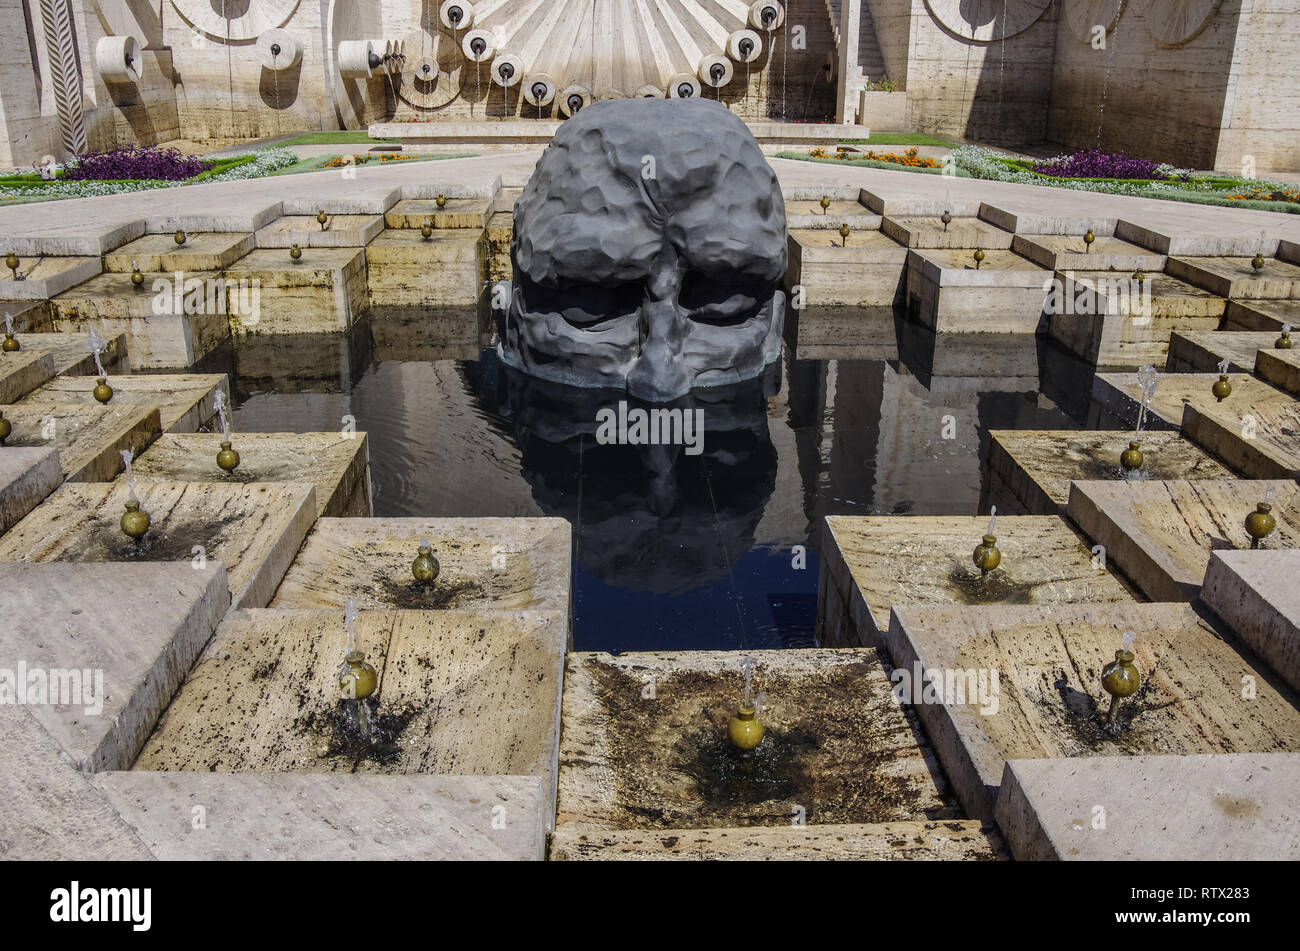 Yerevan, Armenia -07.15.2016: Fountain complex 'The Great Cascade'. Sculpture by David Breuer Vale - 'Visitor' - Stock Image